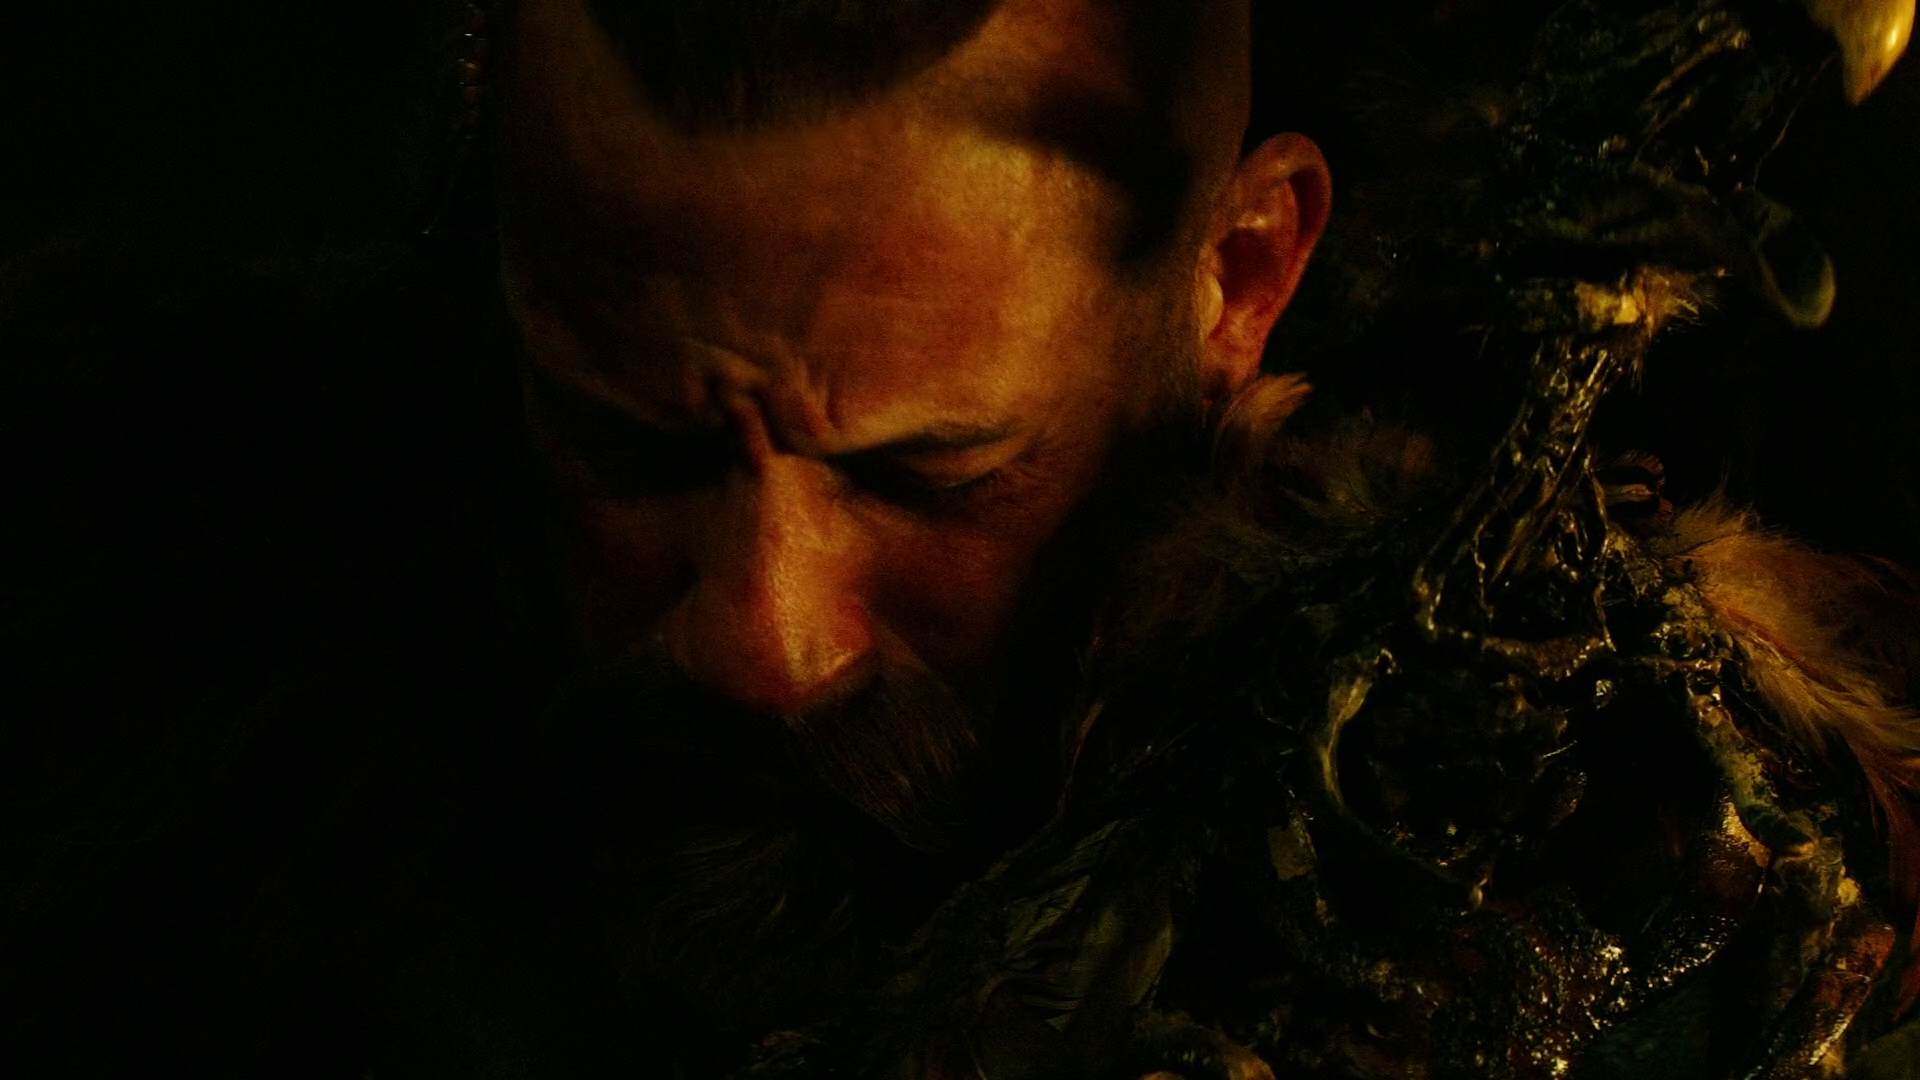 the last witch hunter 2015 1080p webdl aac20 h264